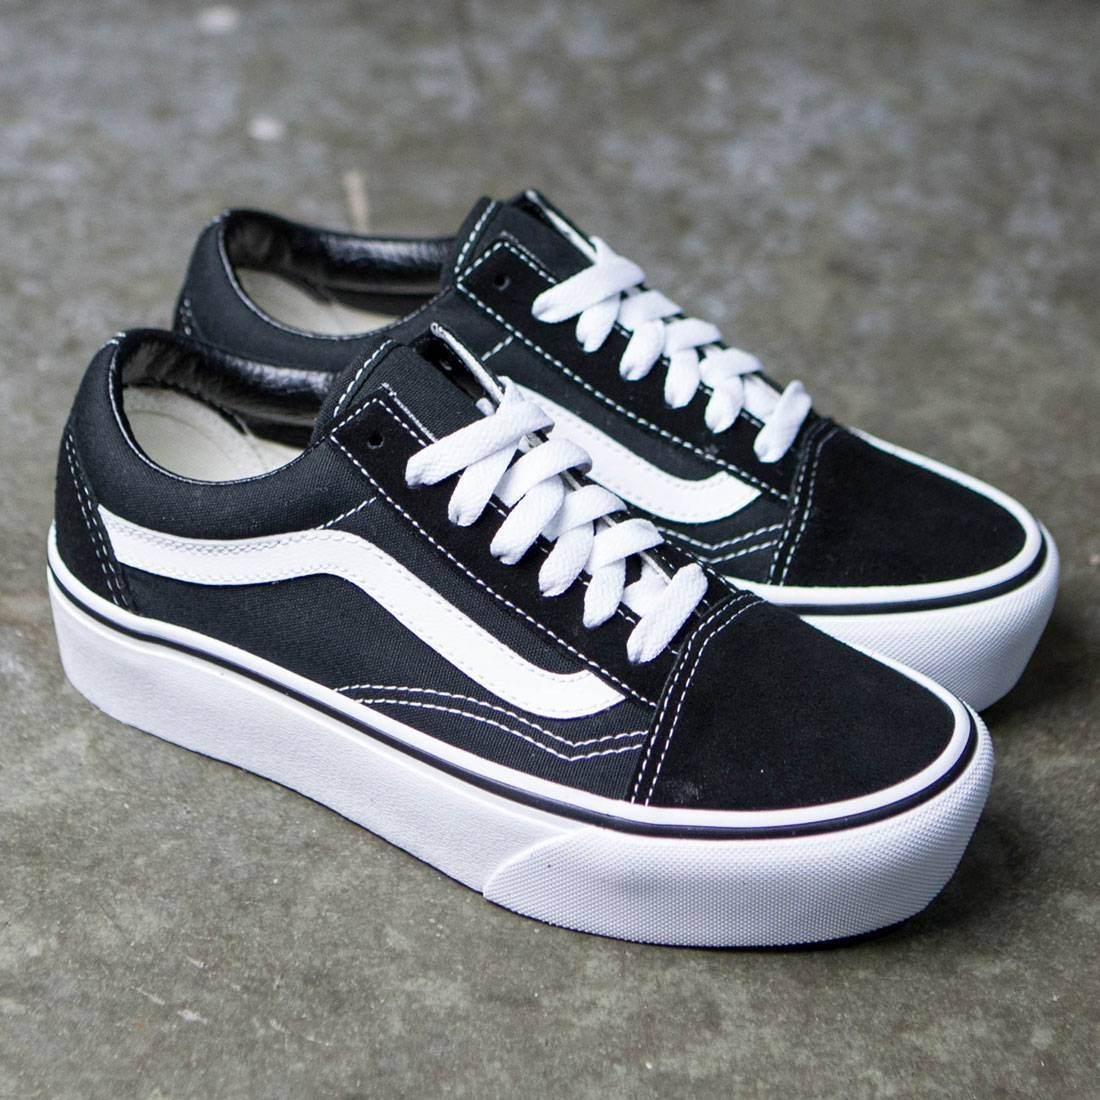 old skool plattform vans damen